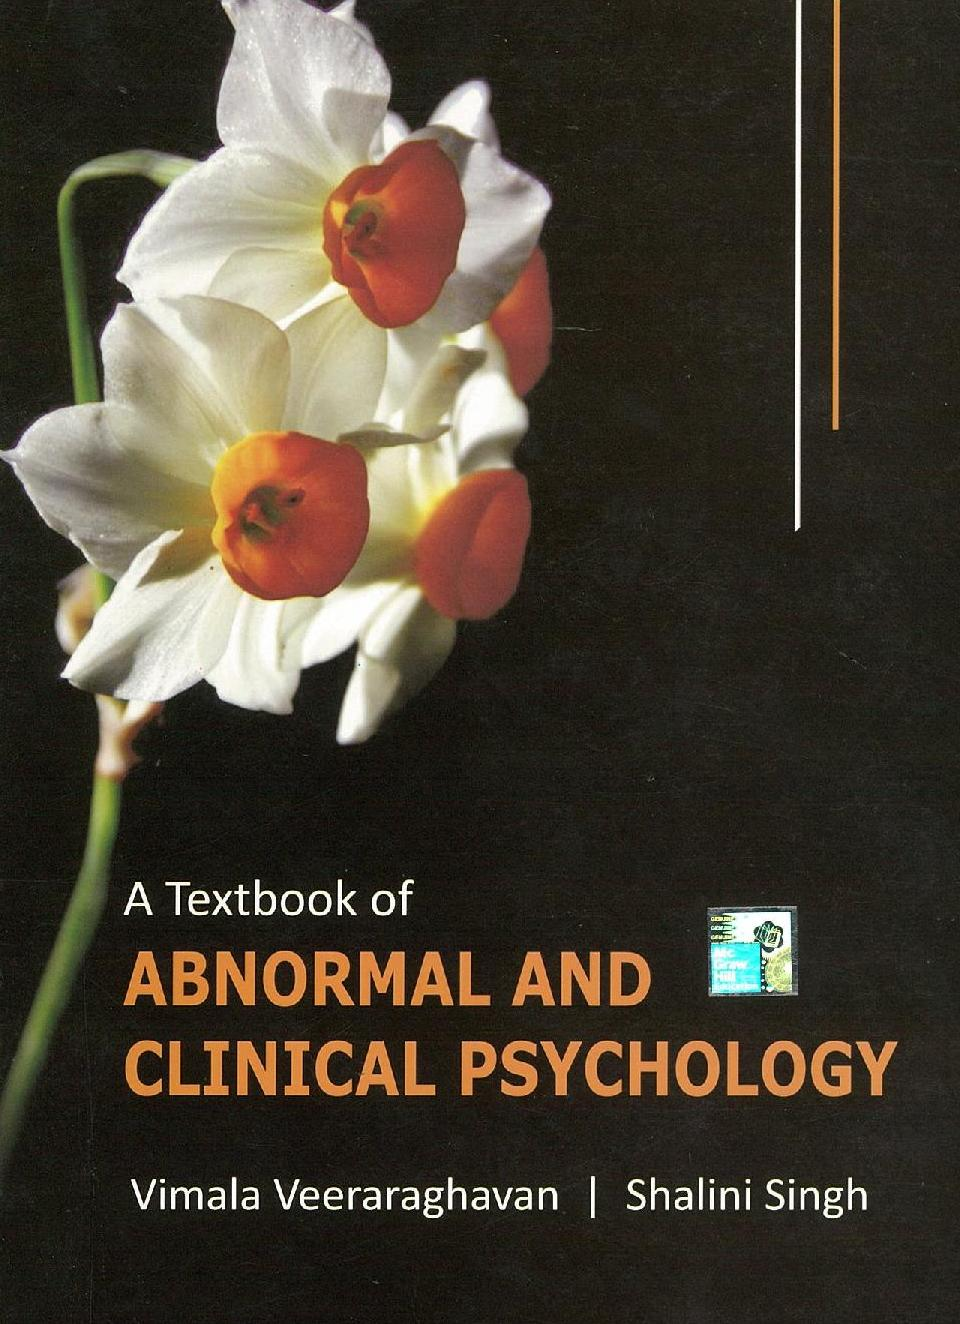 A Textbook of Abnormal